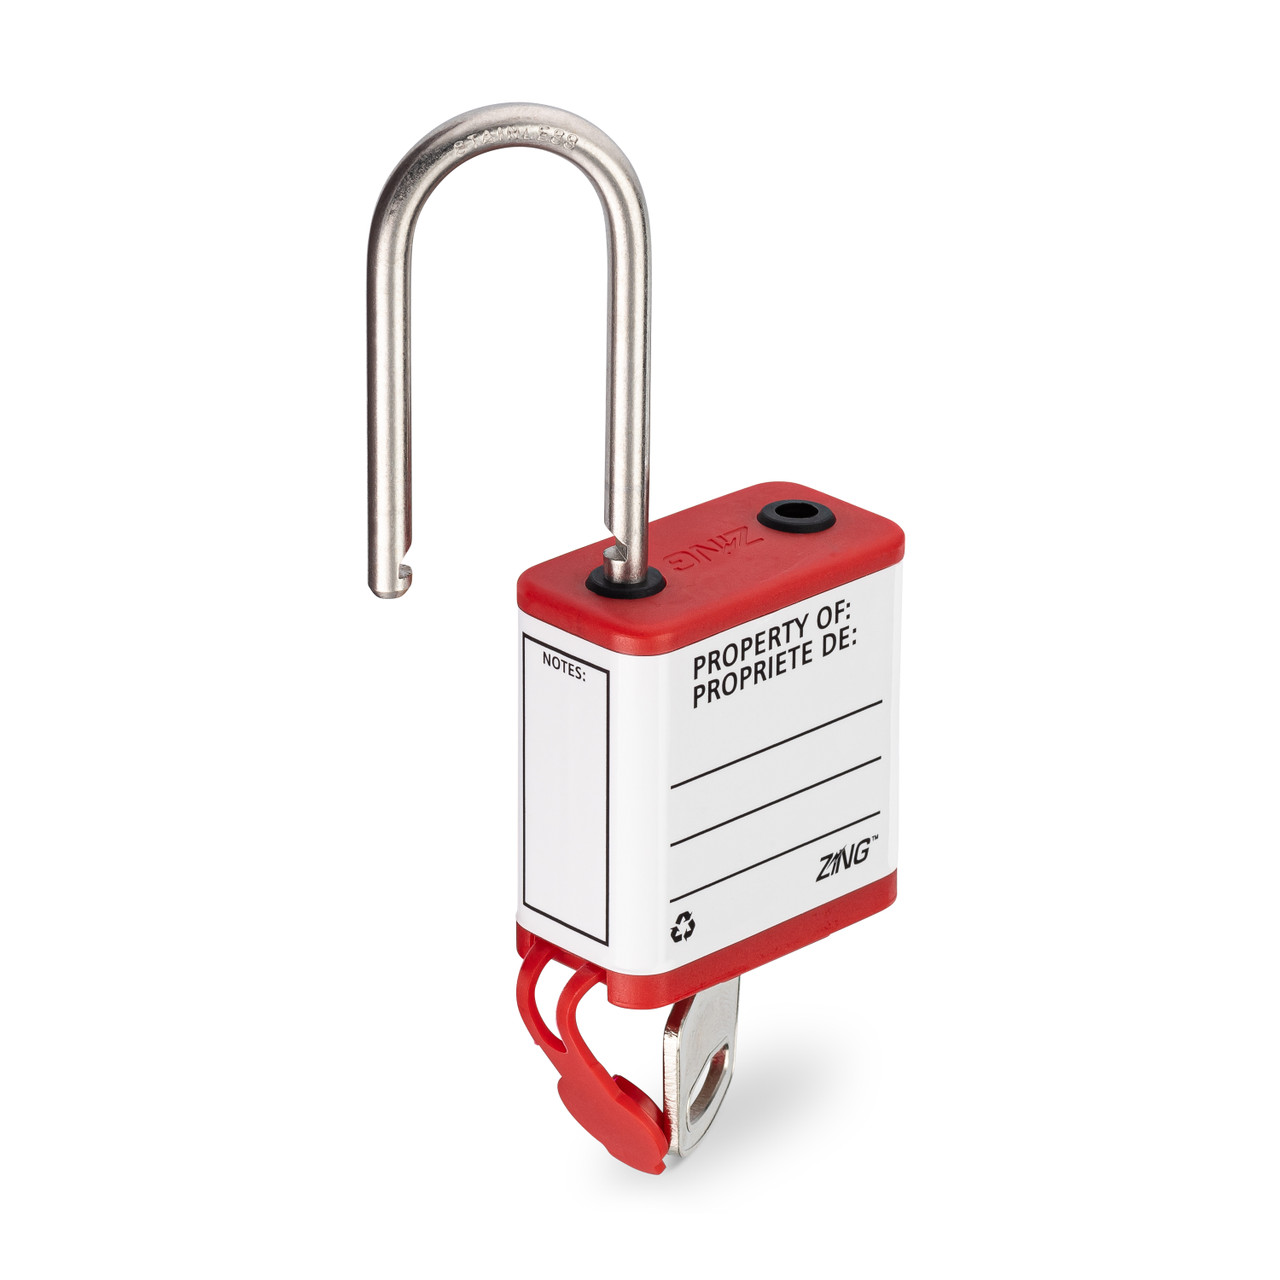 800 Series Extreme Environment Padlock, Available in Different Key Types and Shackle Lengths